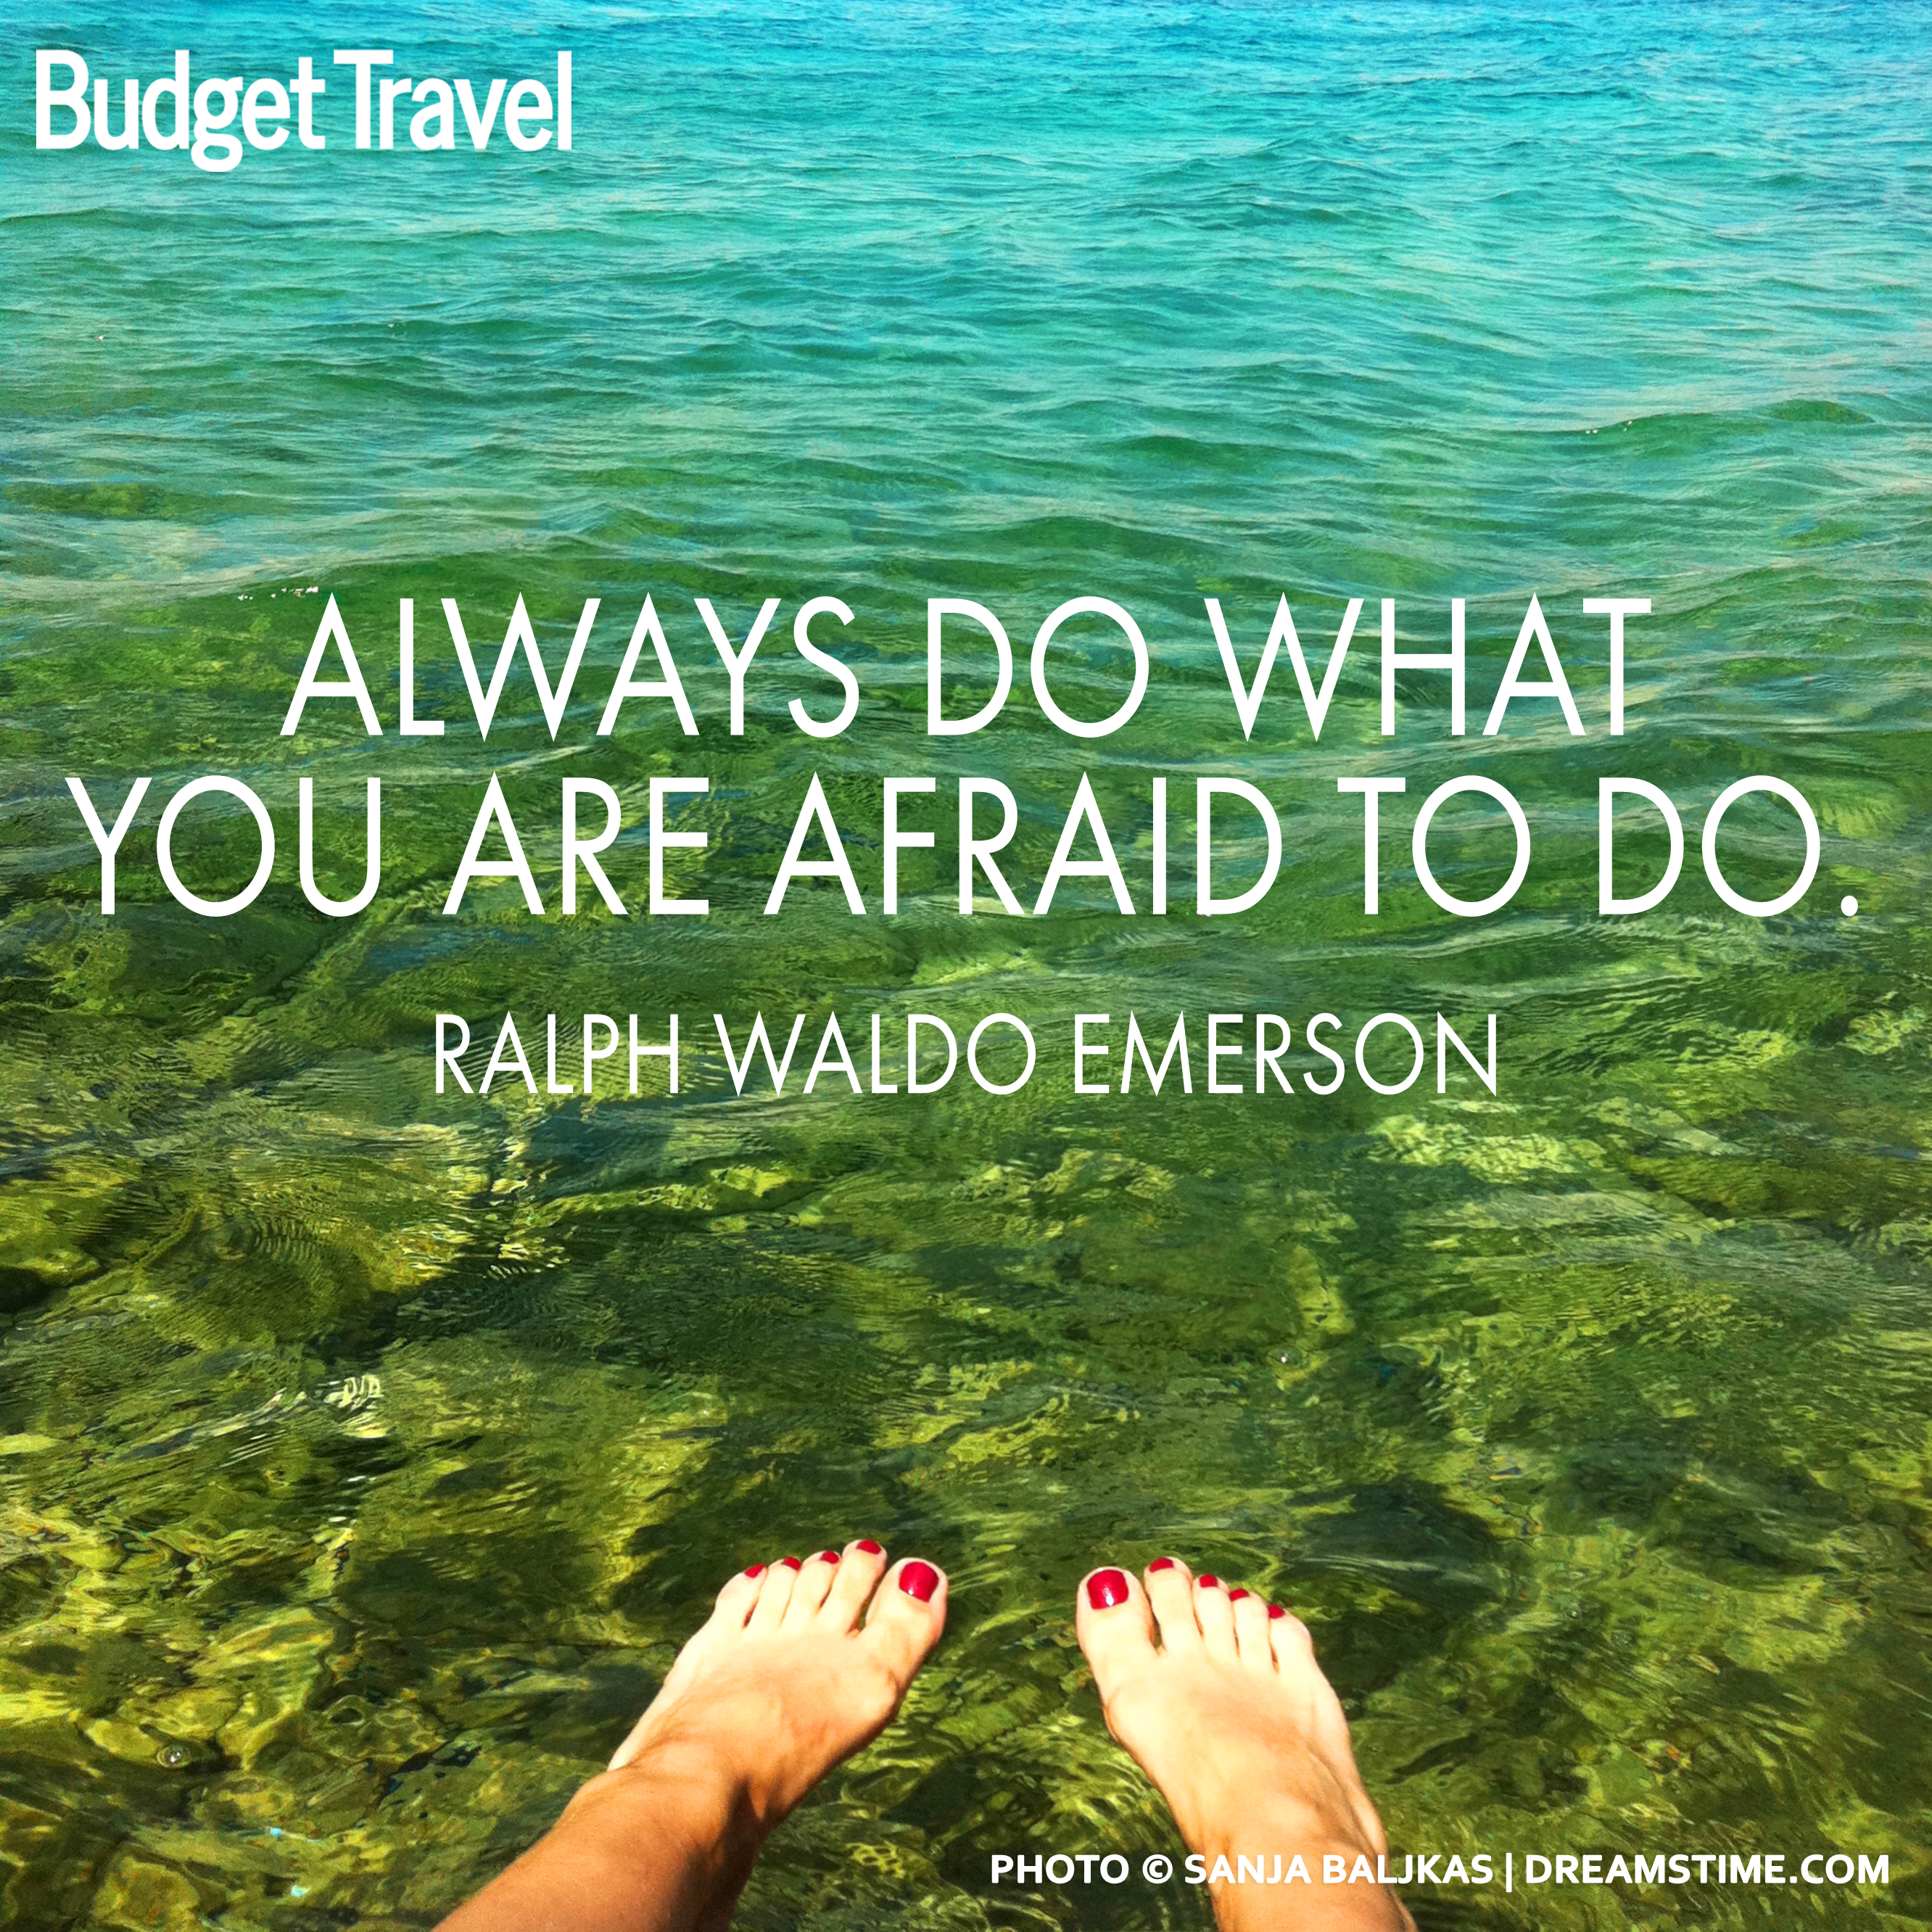 20 Of The Most Inspiring Travel Quotes Of All Time: Always-do-what-youre-afraid-to-do-travel-quote-472015